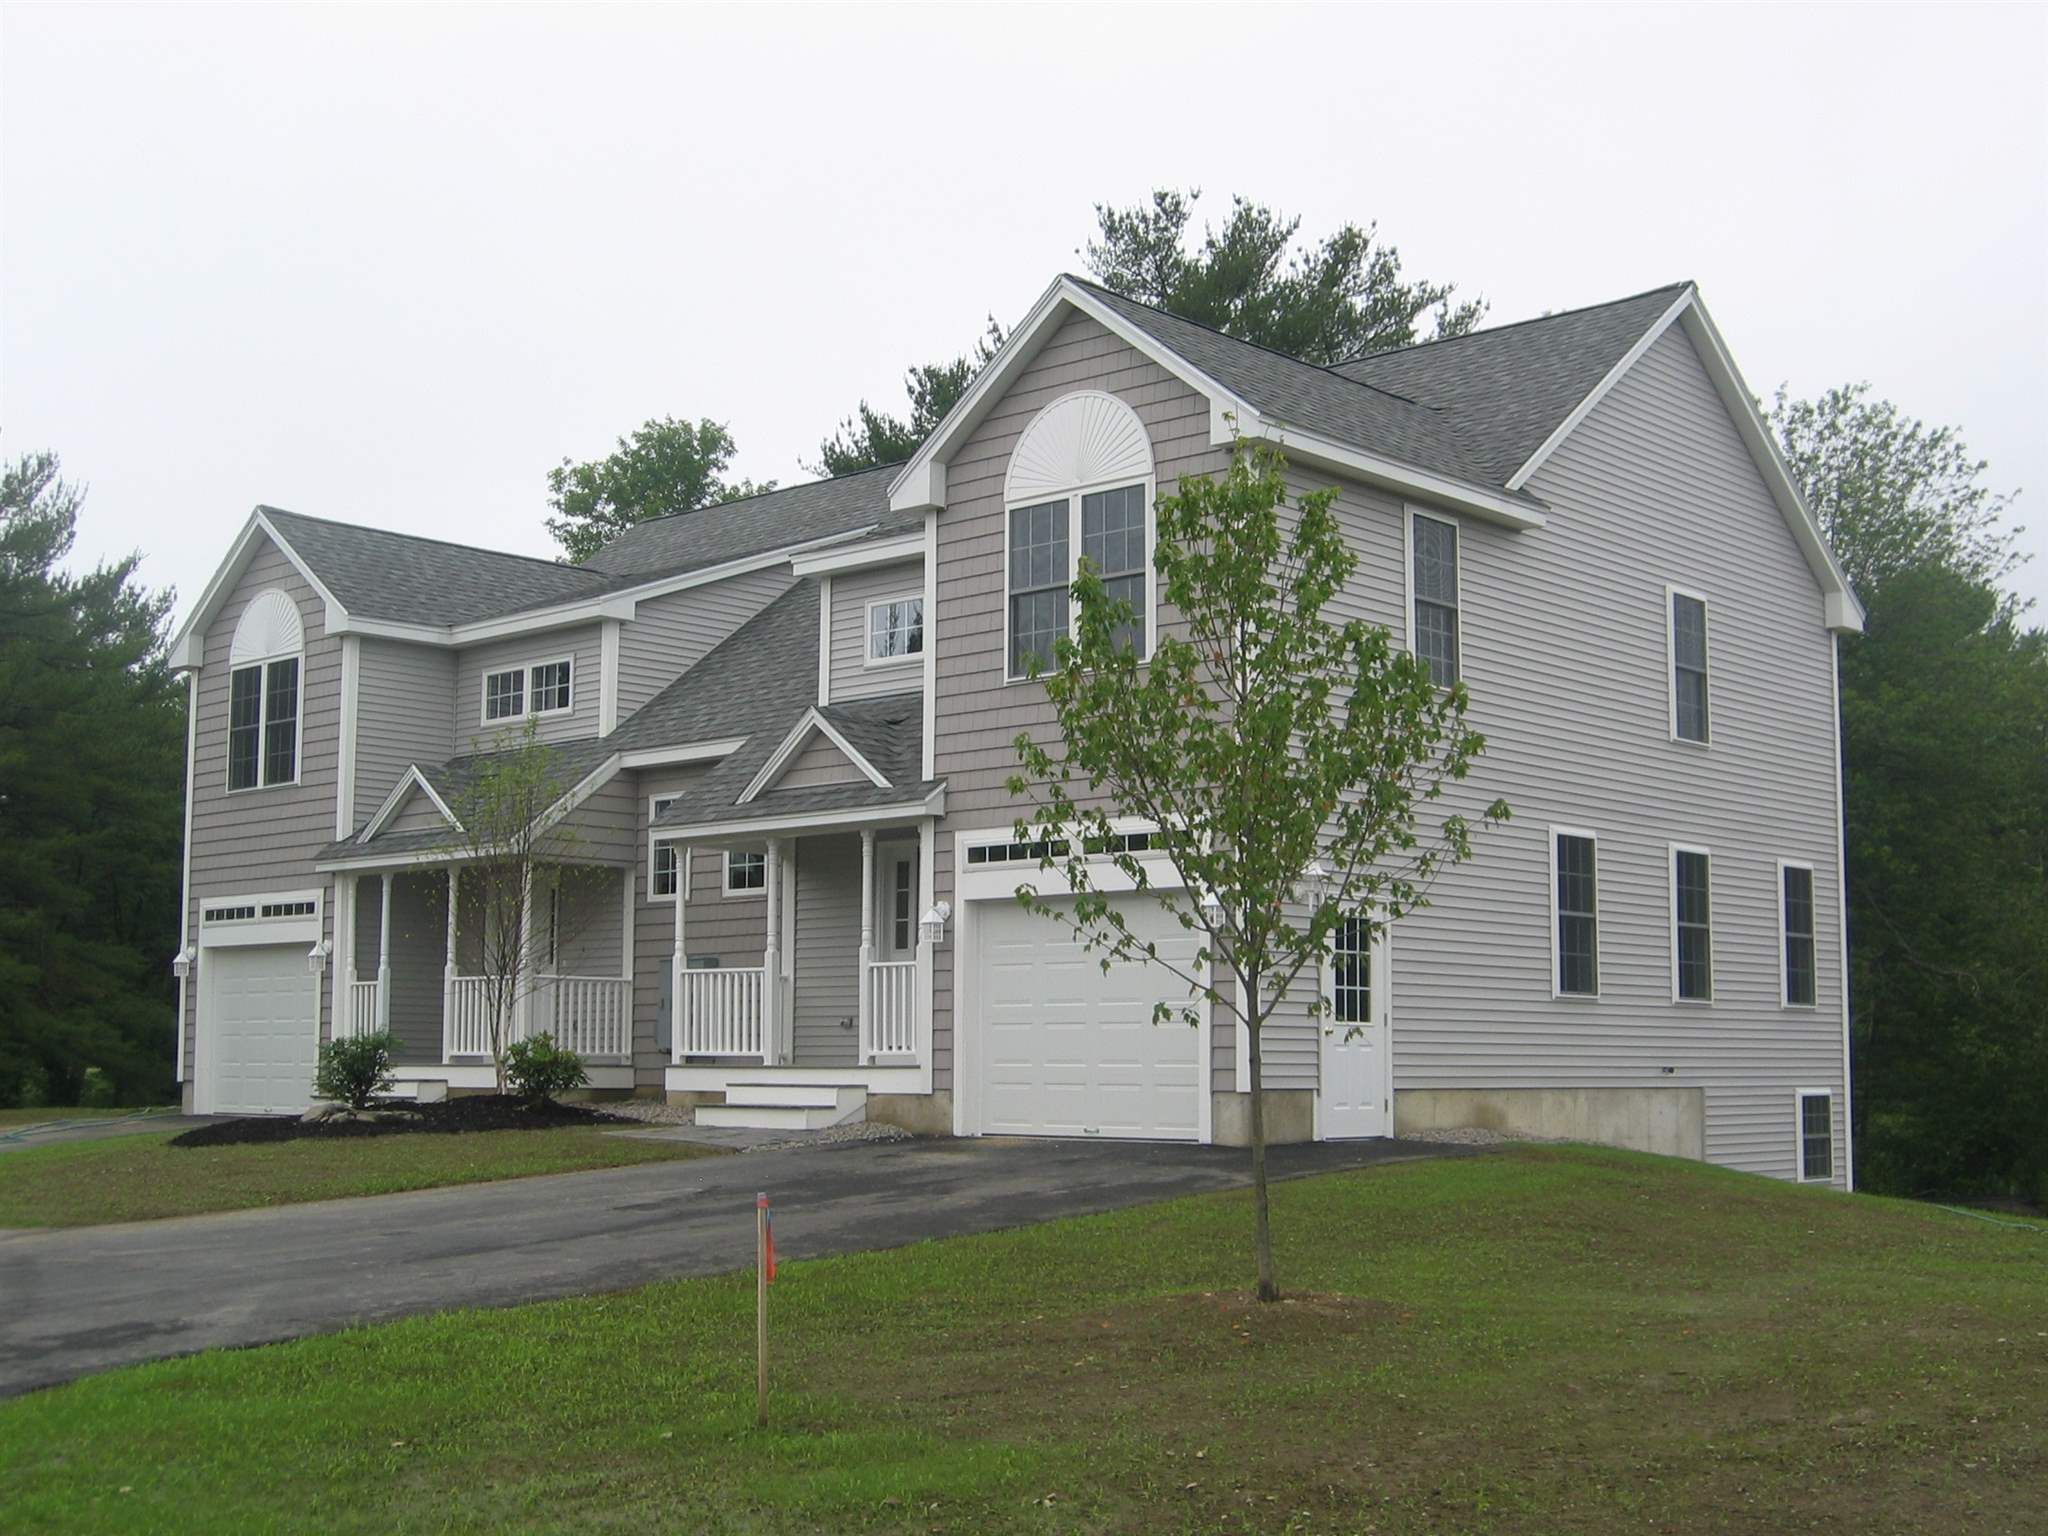 Photo of 1 Taylor Court Stratham NH 03885